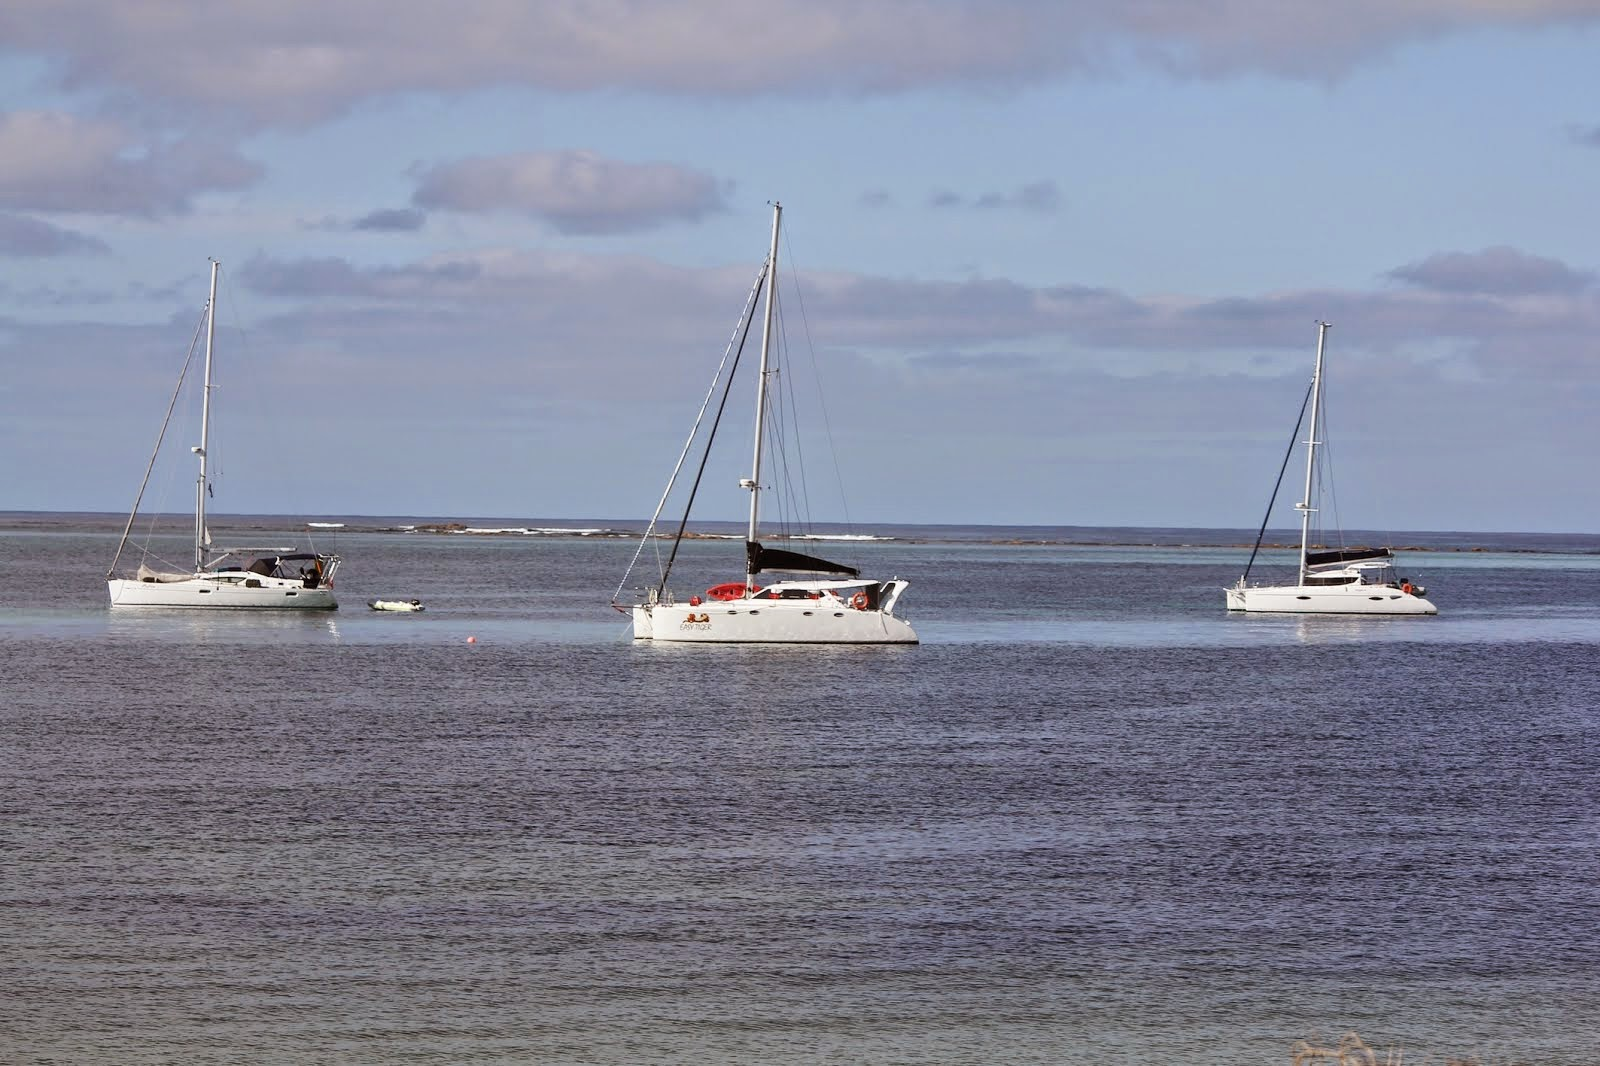 Our Sailing trio in Hopetoun WA